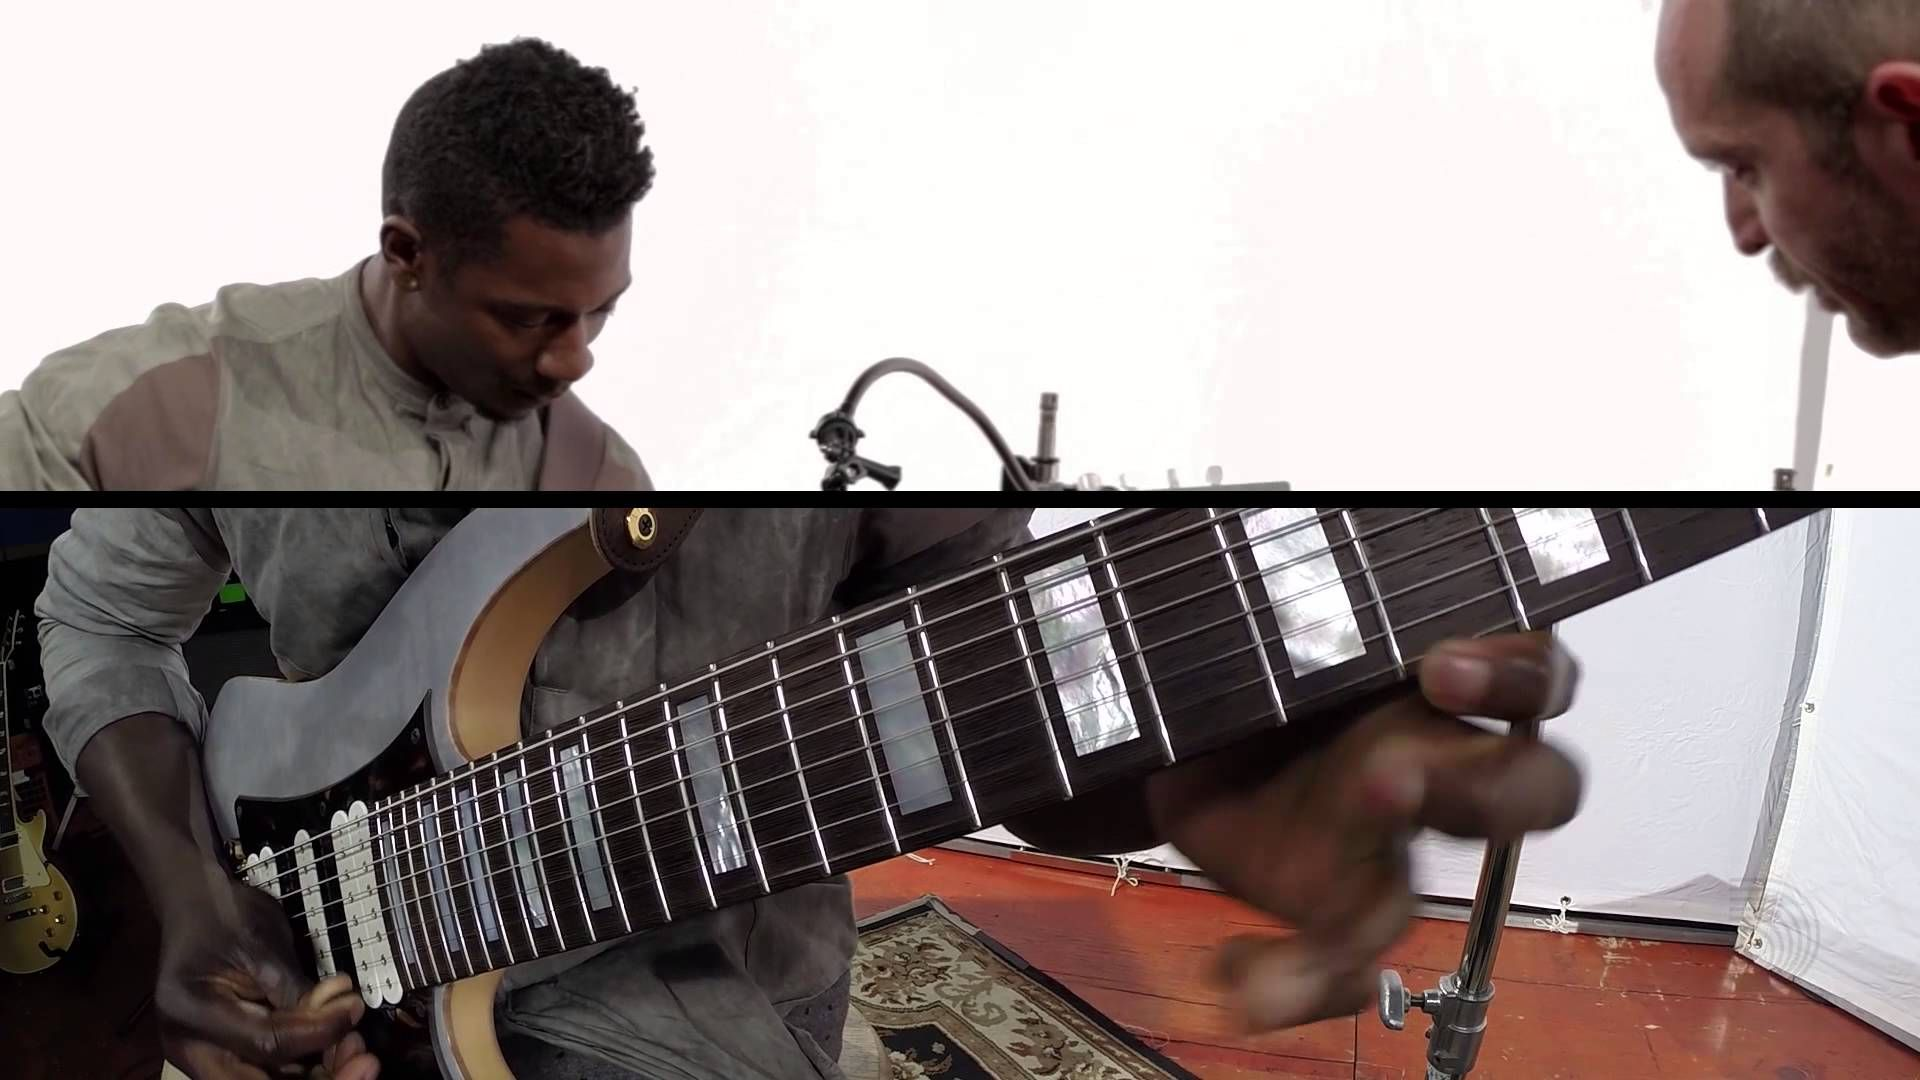 Episode 1 From Guitar Power Featuring Tosin Abasi From Animals As Leaders And Our Nyxl Strings Tosin Abasi Guitar Electric Guitar Strings